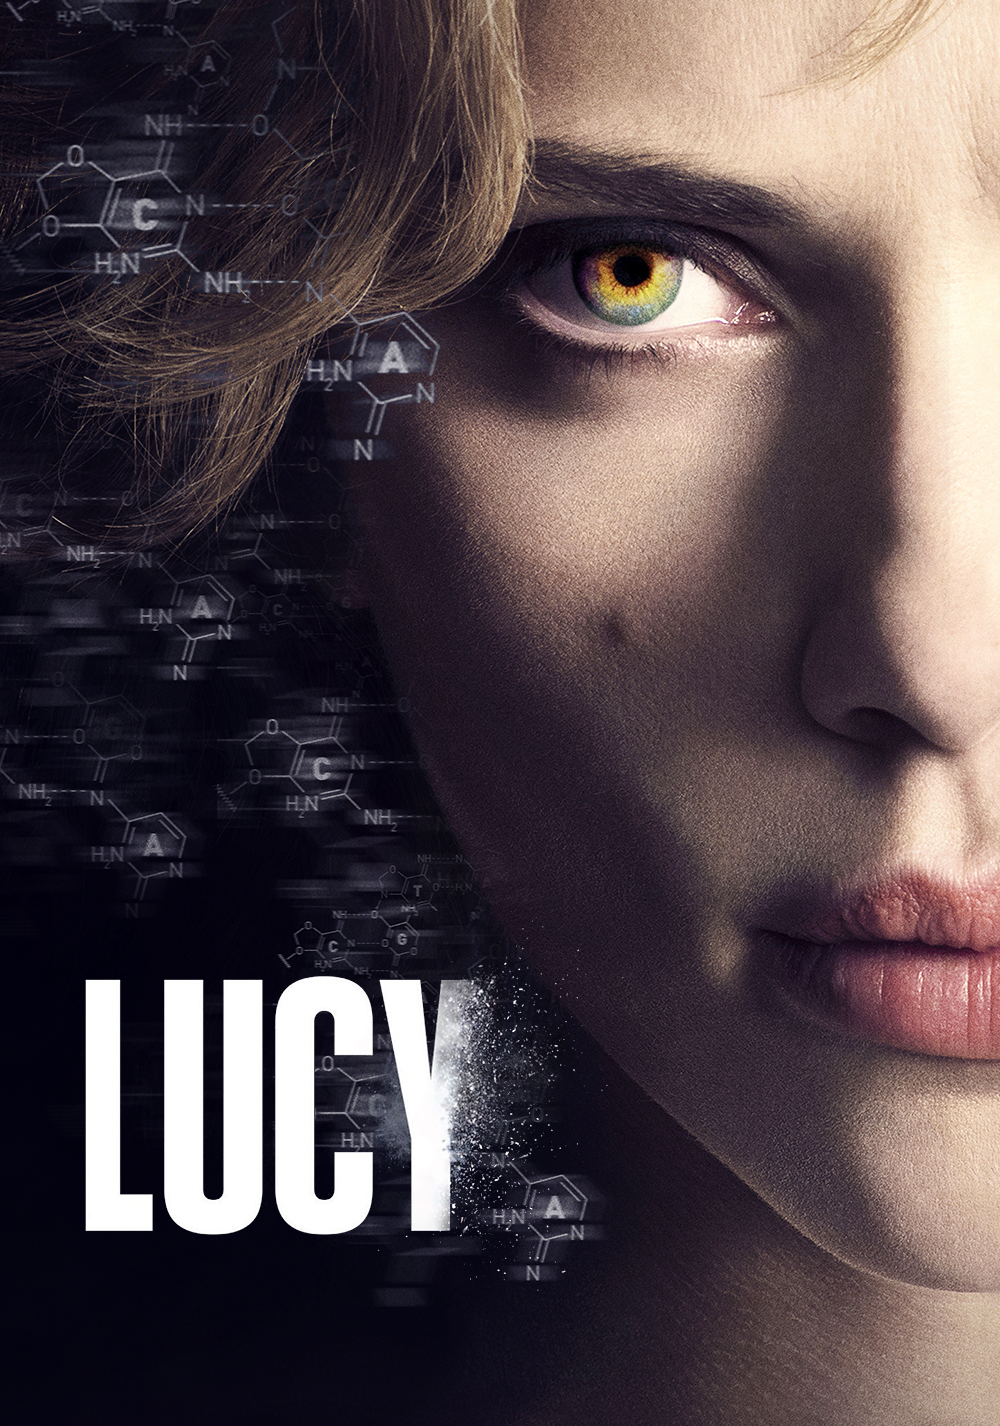 LUCY (2014) MOVIE TAMIL DUBBED HD